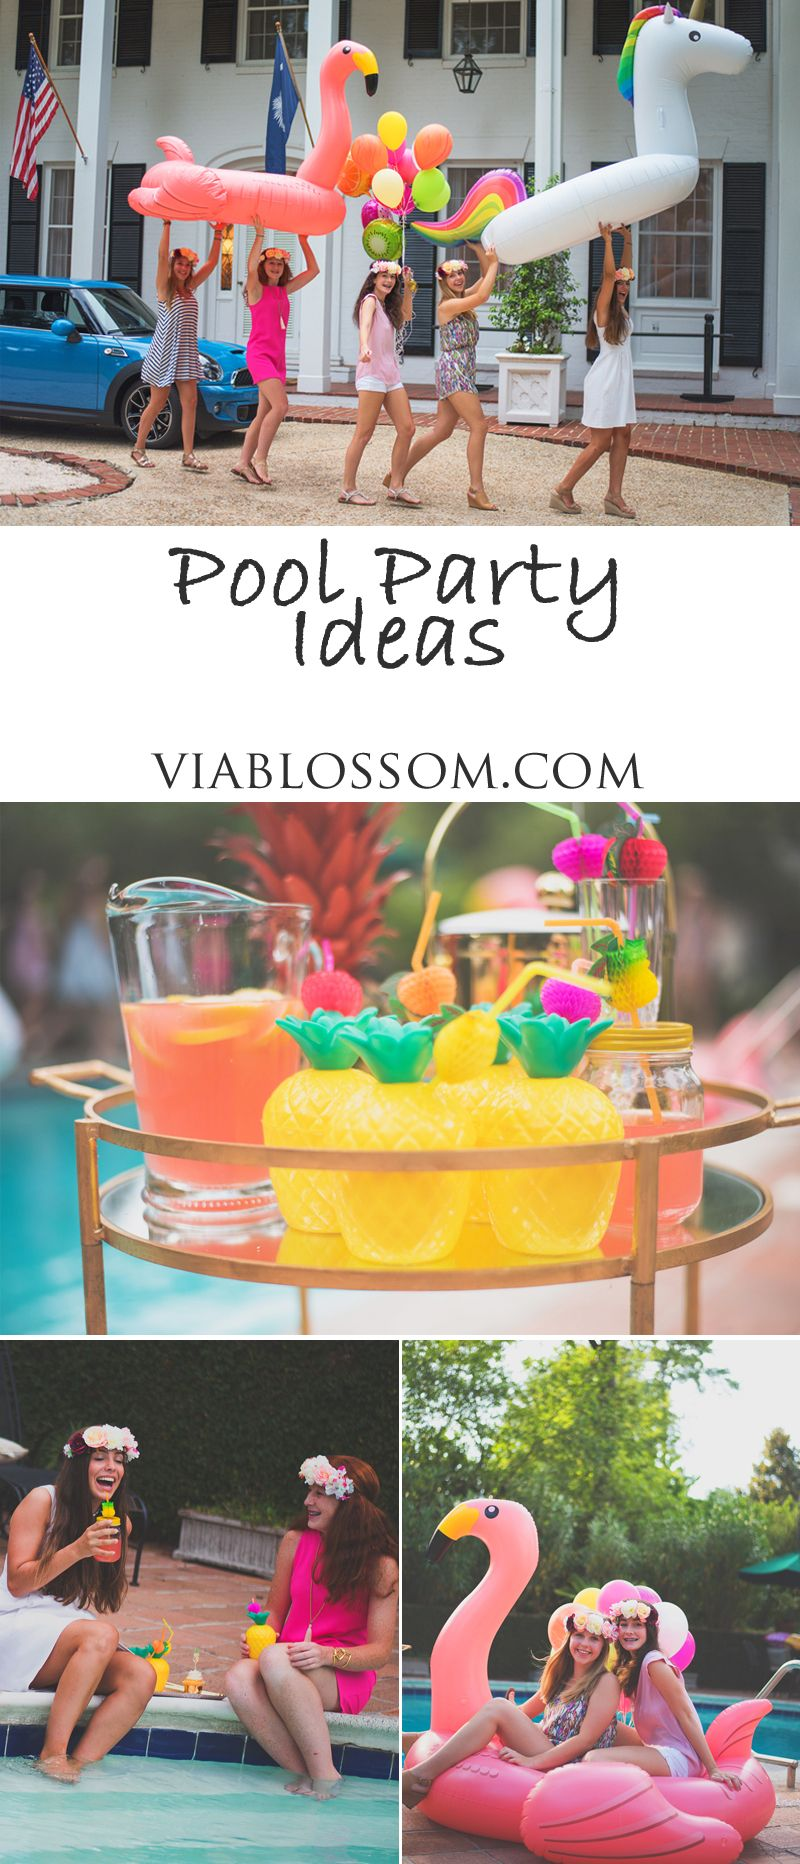 Pool Party Ideas Pool party decorations, Tropical pool